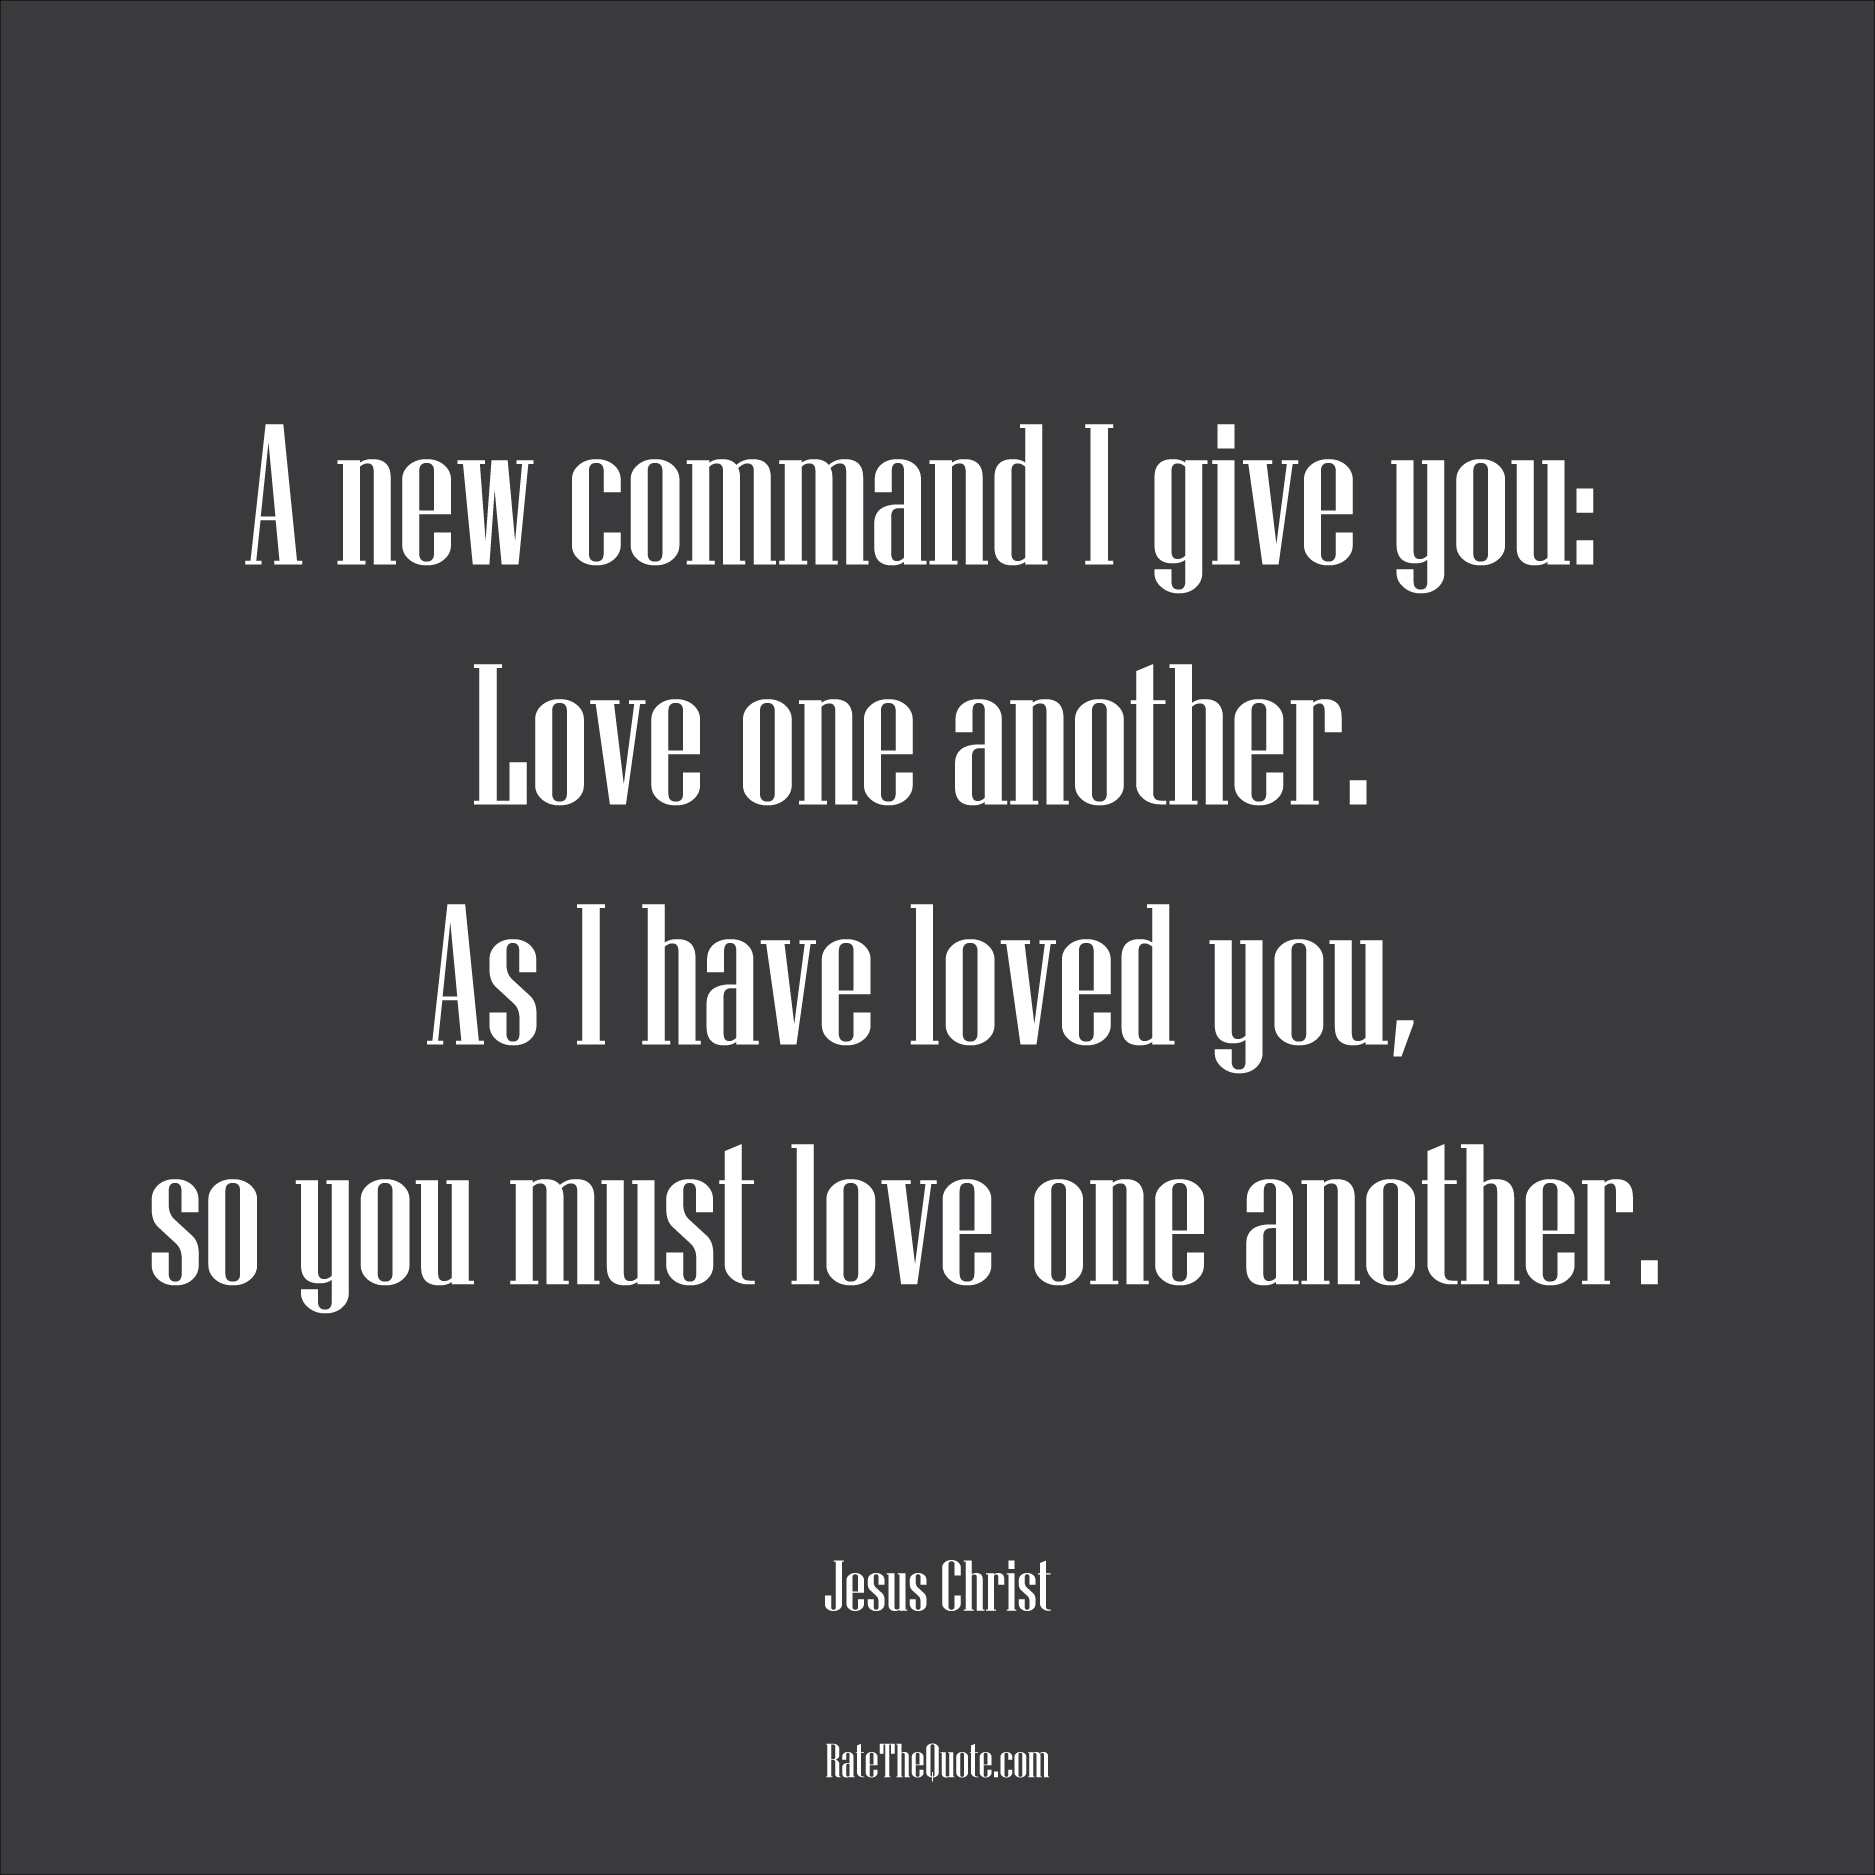 Love One Another Quotes All Quotes Archives  Page 131 Of 346  Ratethequote